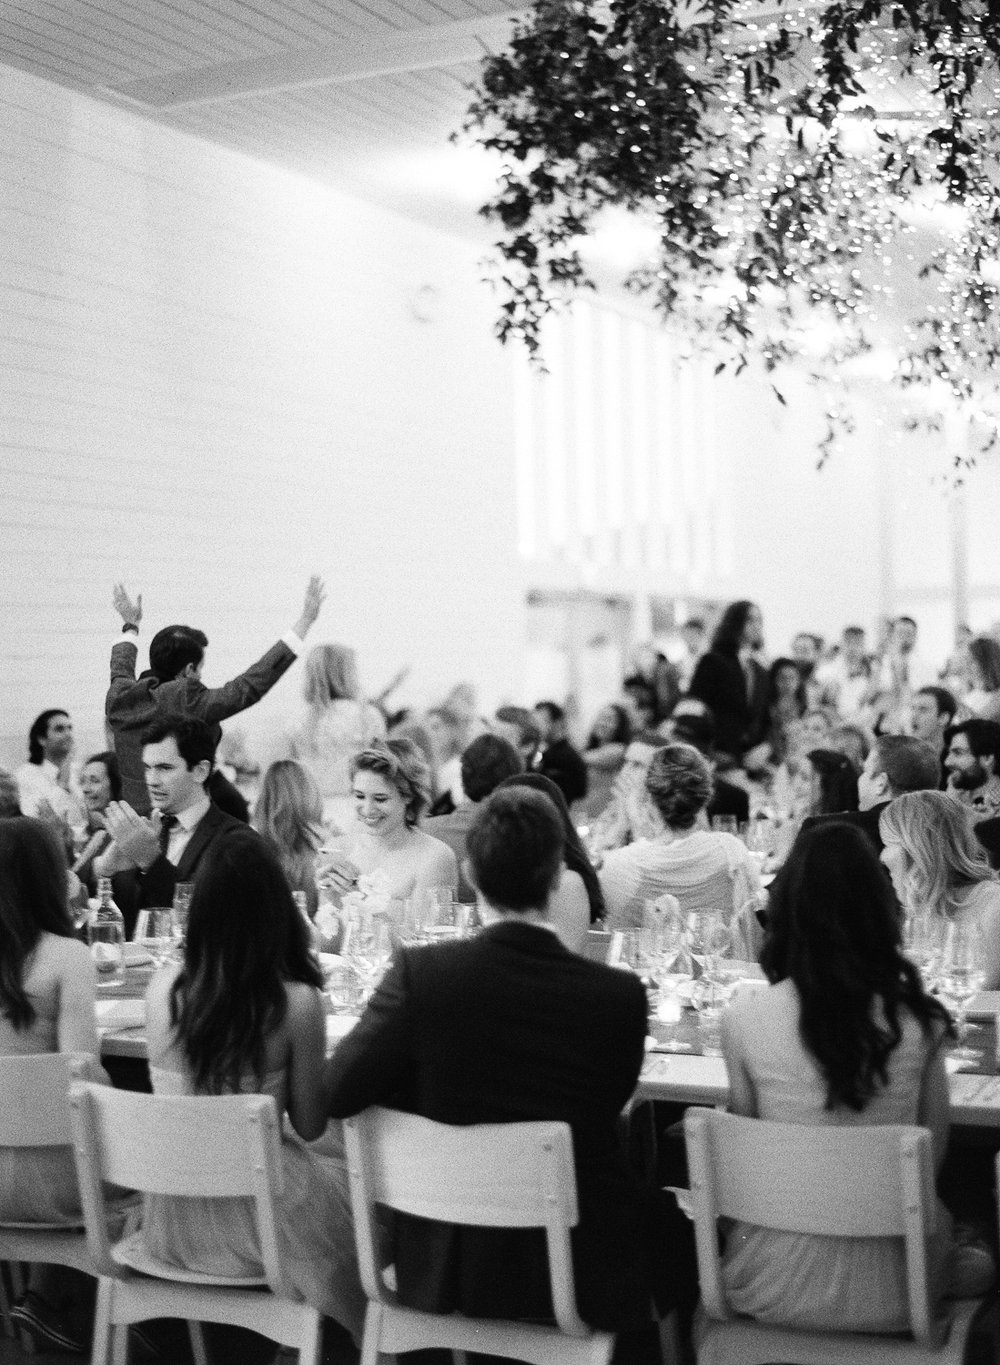 PROSPECT_HOUSE_WEDDING_AUSTIN_TX_BY_MATTHEW_MOORE_PHOTOGRAPHY_00609.jpg